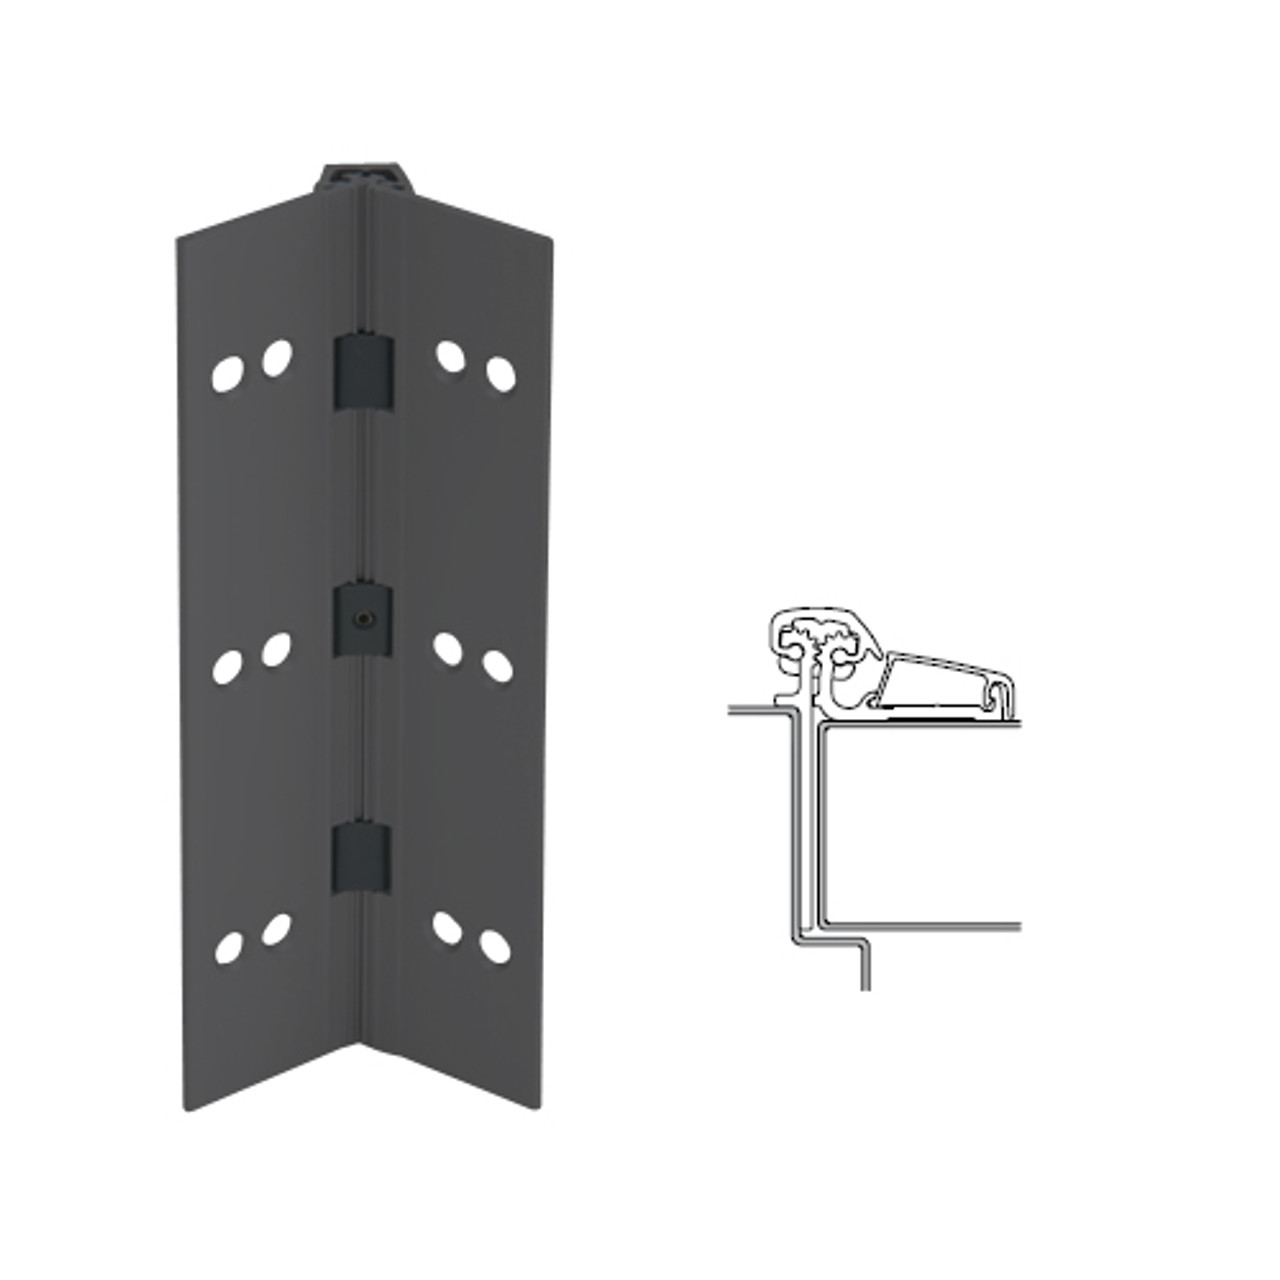 054XY-315AN-120-WD IVES Adjustable Half Surface Continuous Geared Hinges with Wood Screws in Anodized Black